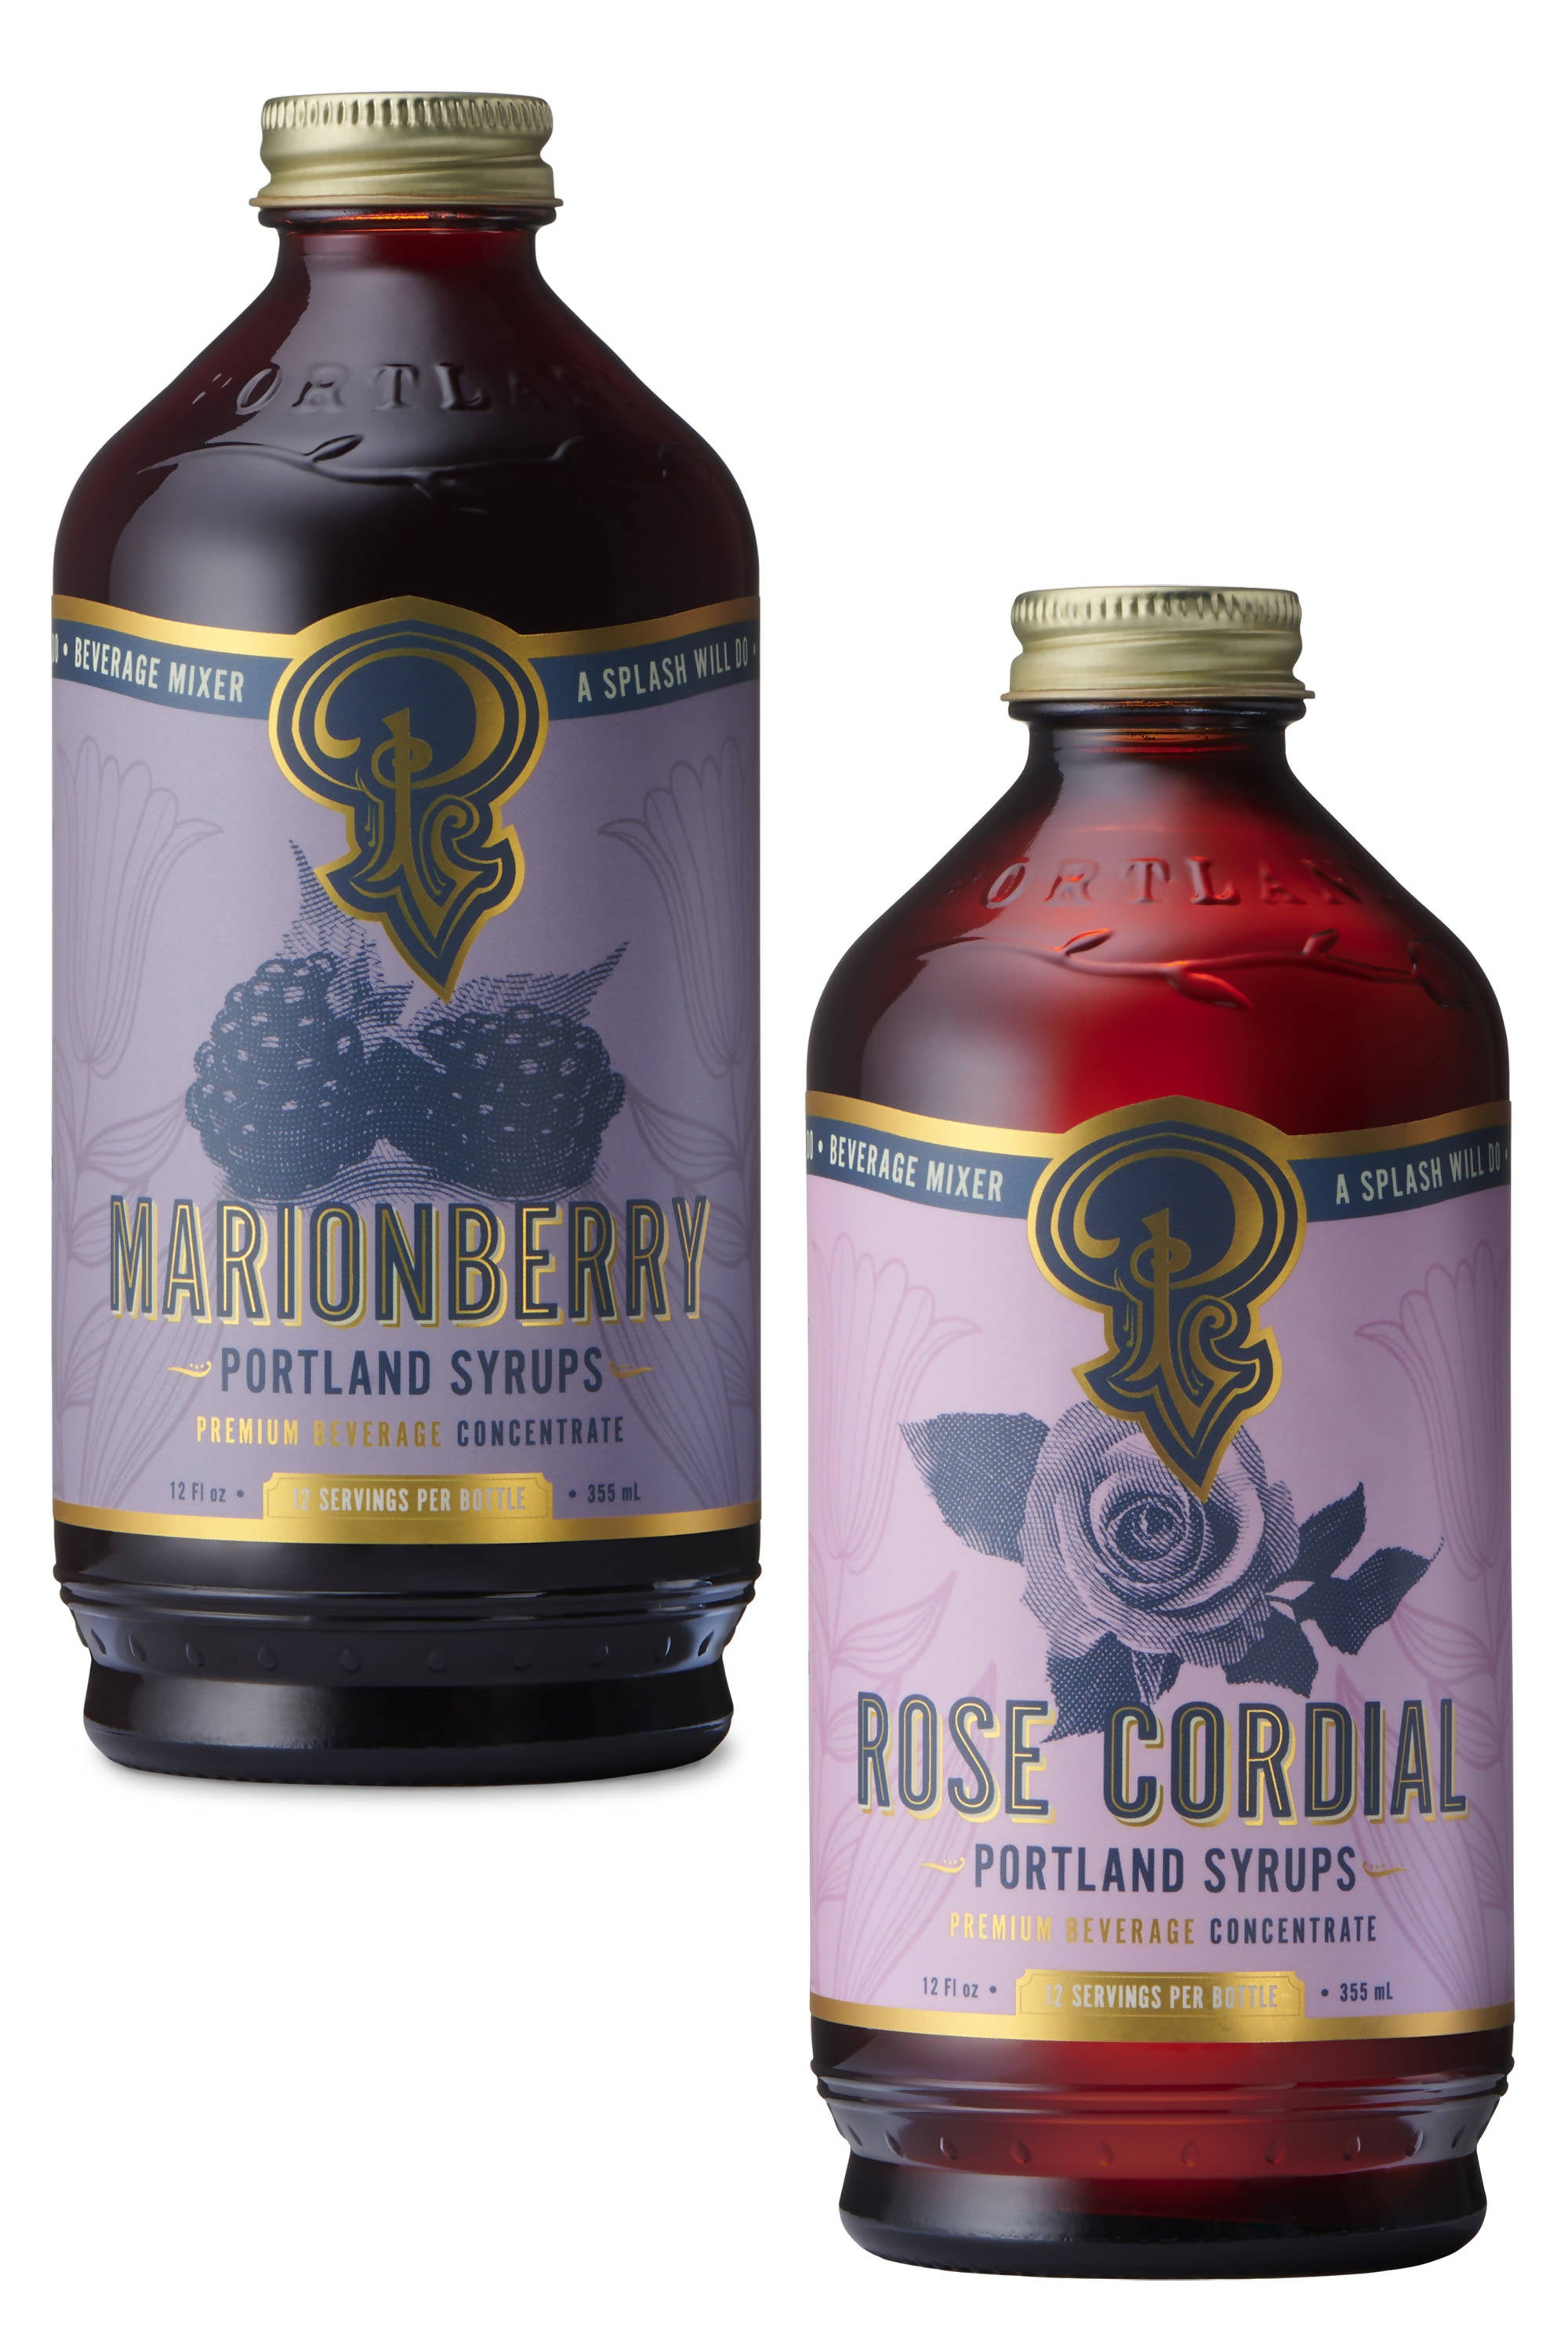 Marionberry and Rose Cordial